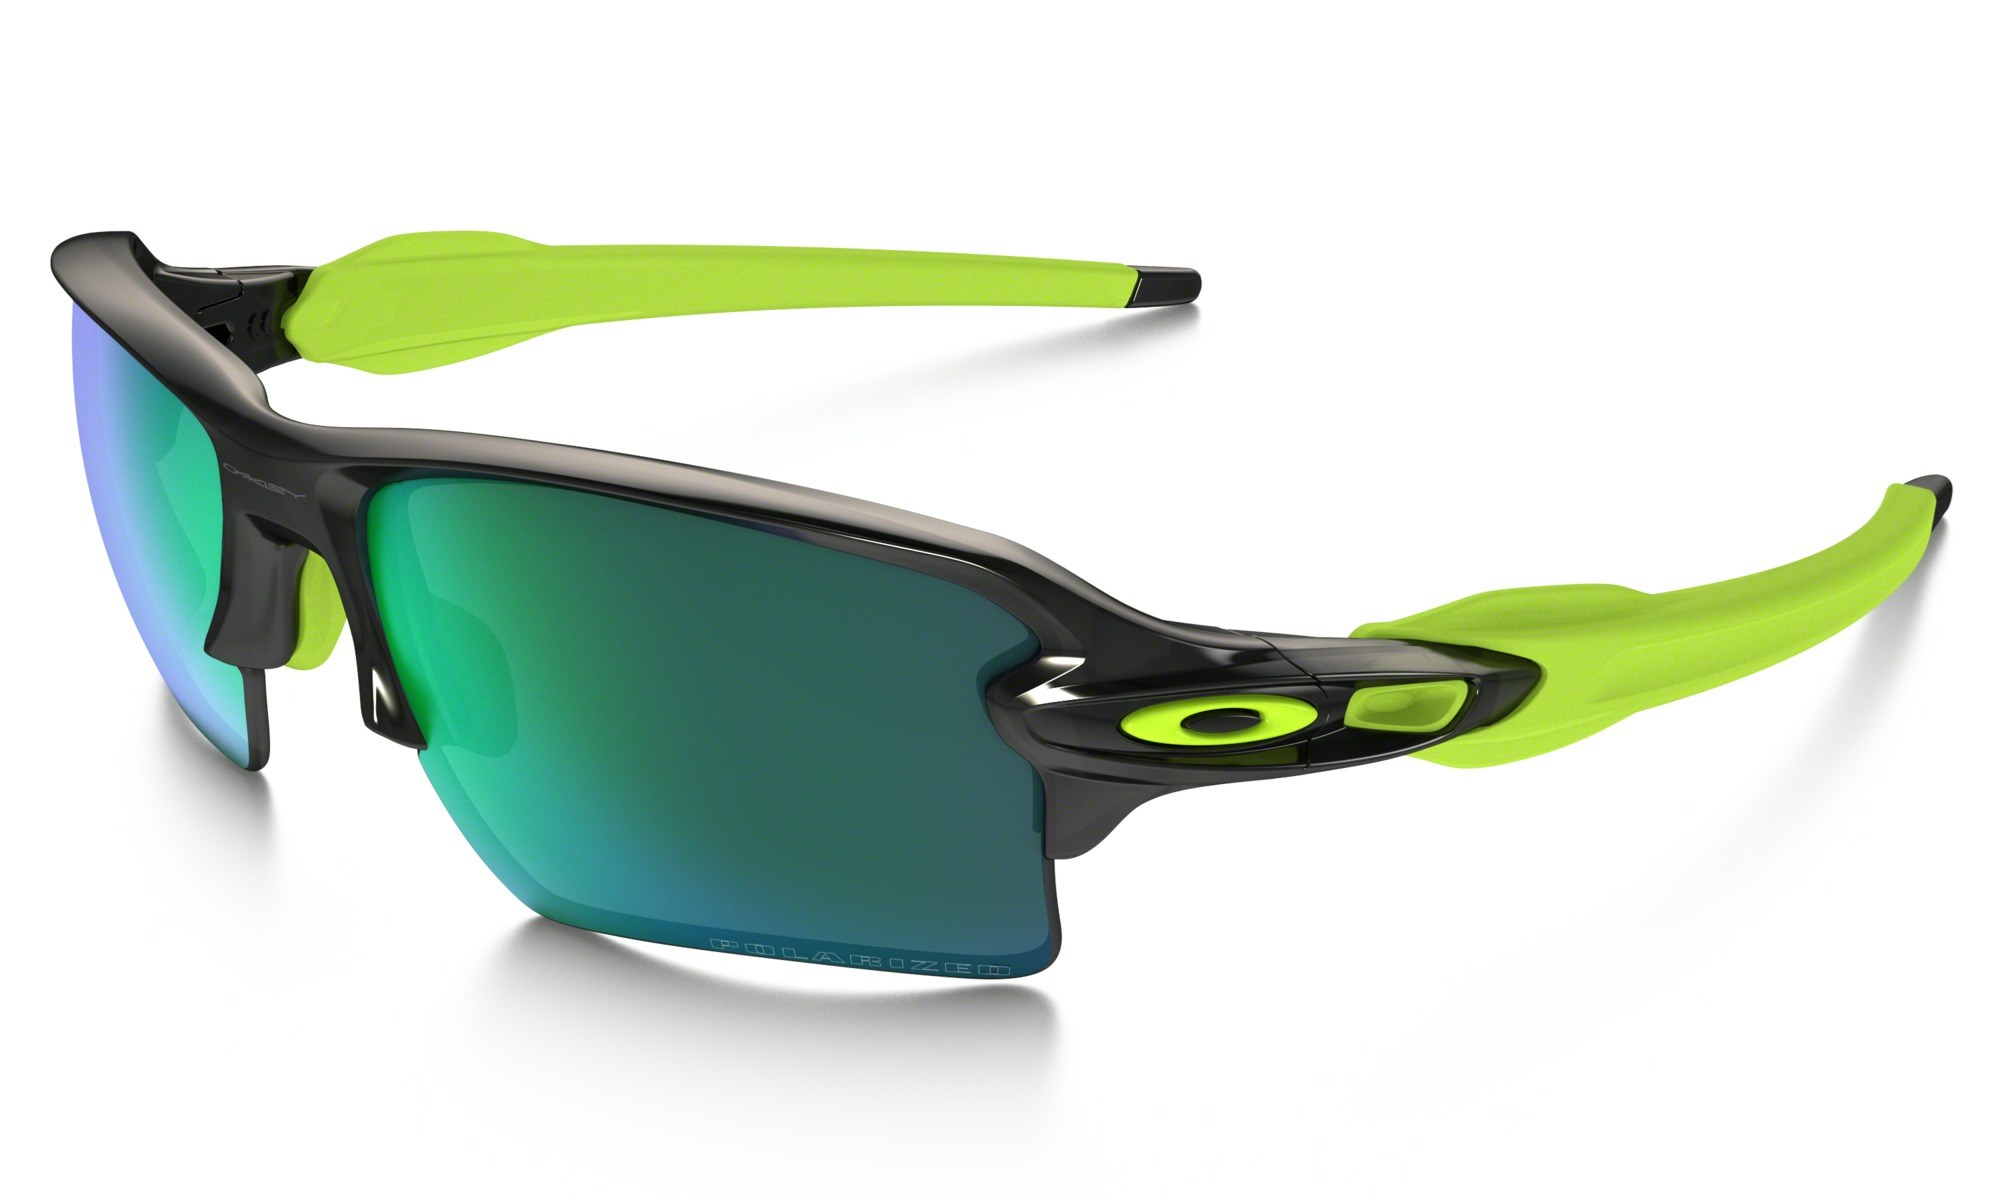 35a0507c54 Oakley Flak 2.0 XL Polarized Black Ink Jade Iridium. 0 (Be the first to add  a review!)